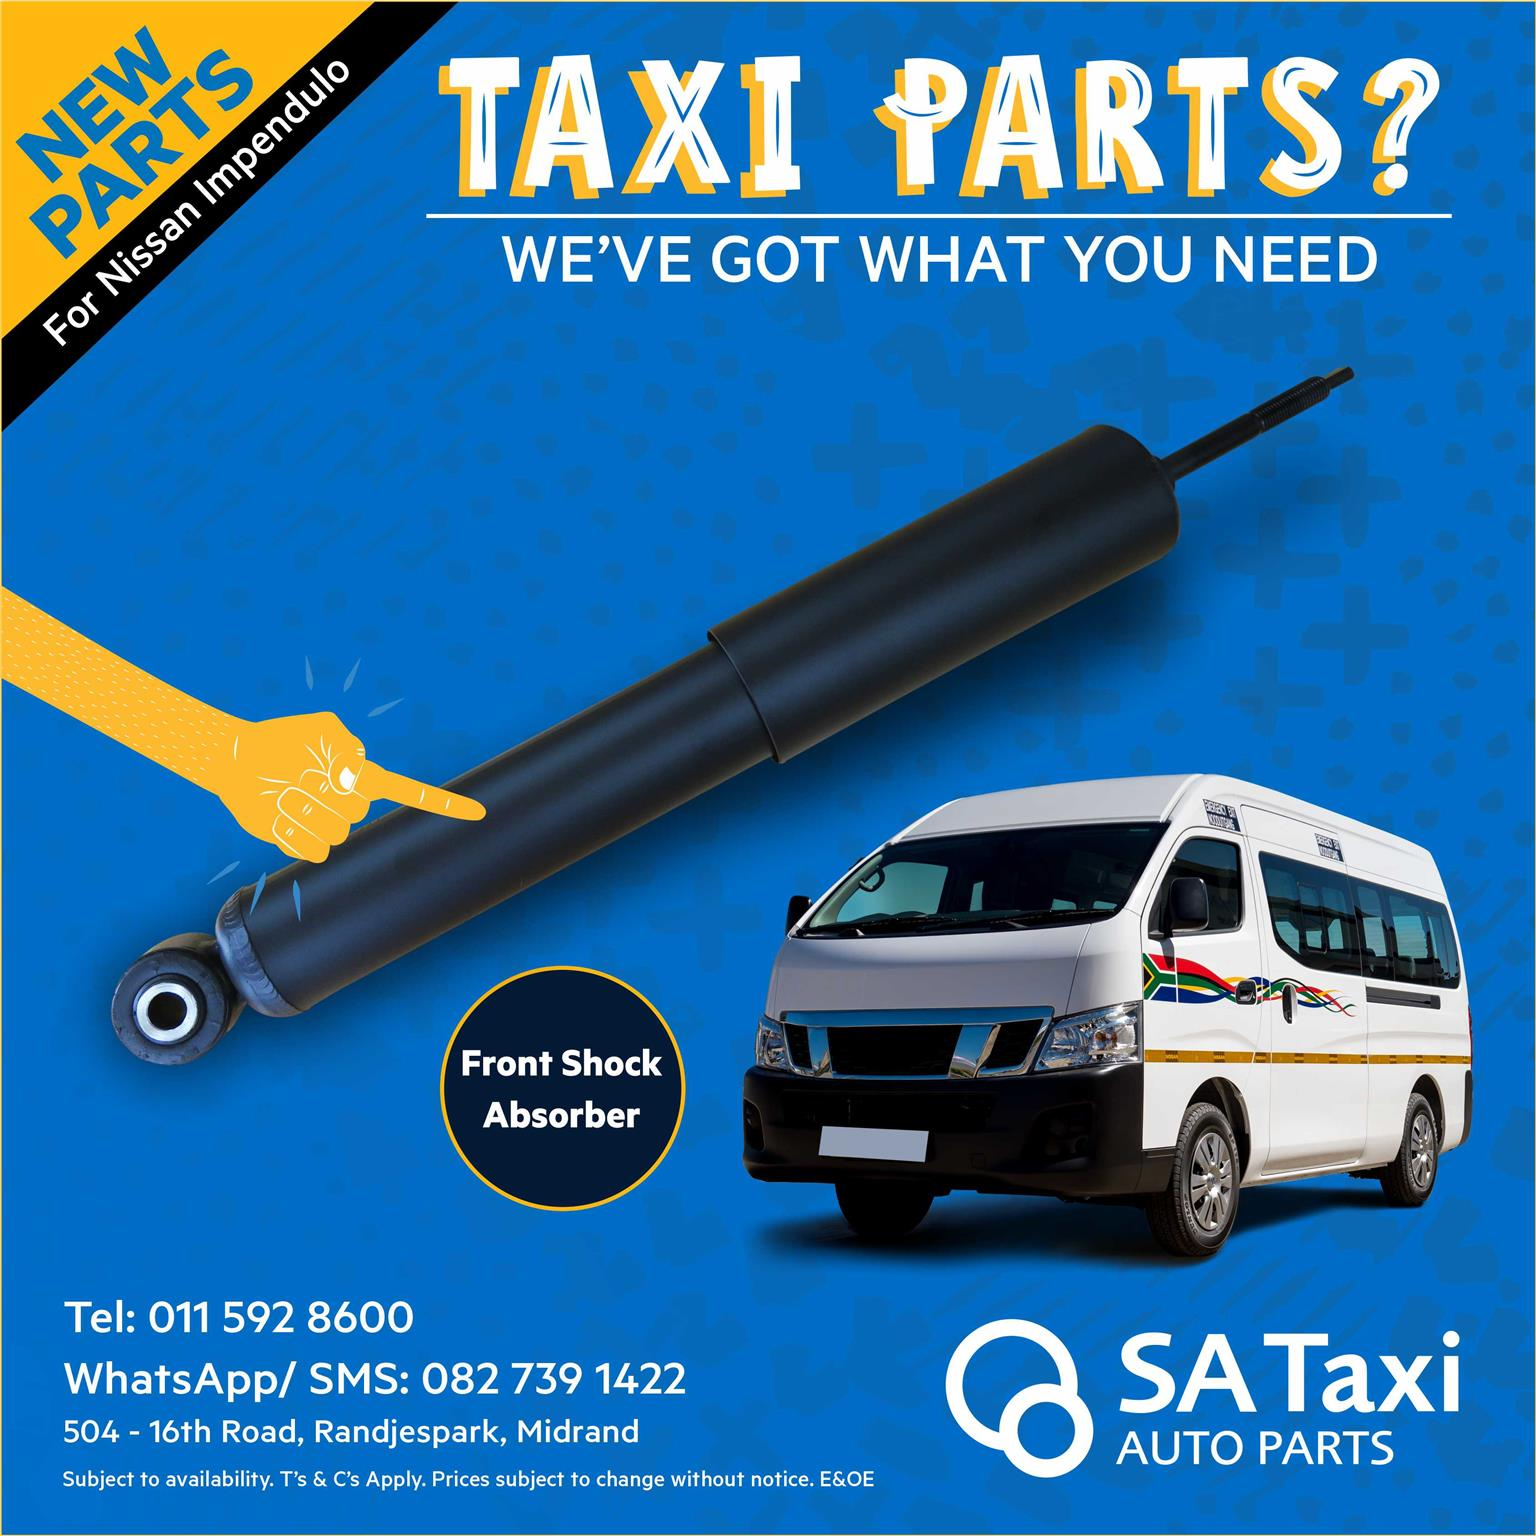 Front Shock Absorber - NEW Parts for Nissan NV350 Impendulo - SA Taxi Auto Parts quality spares